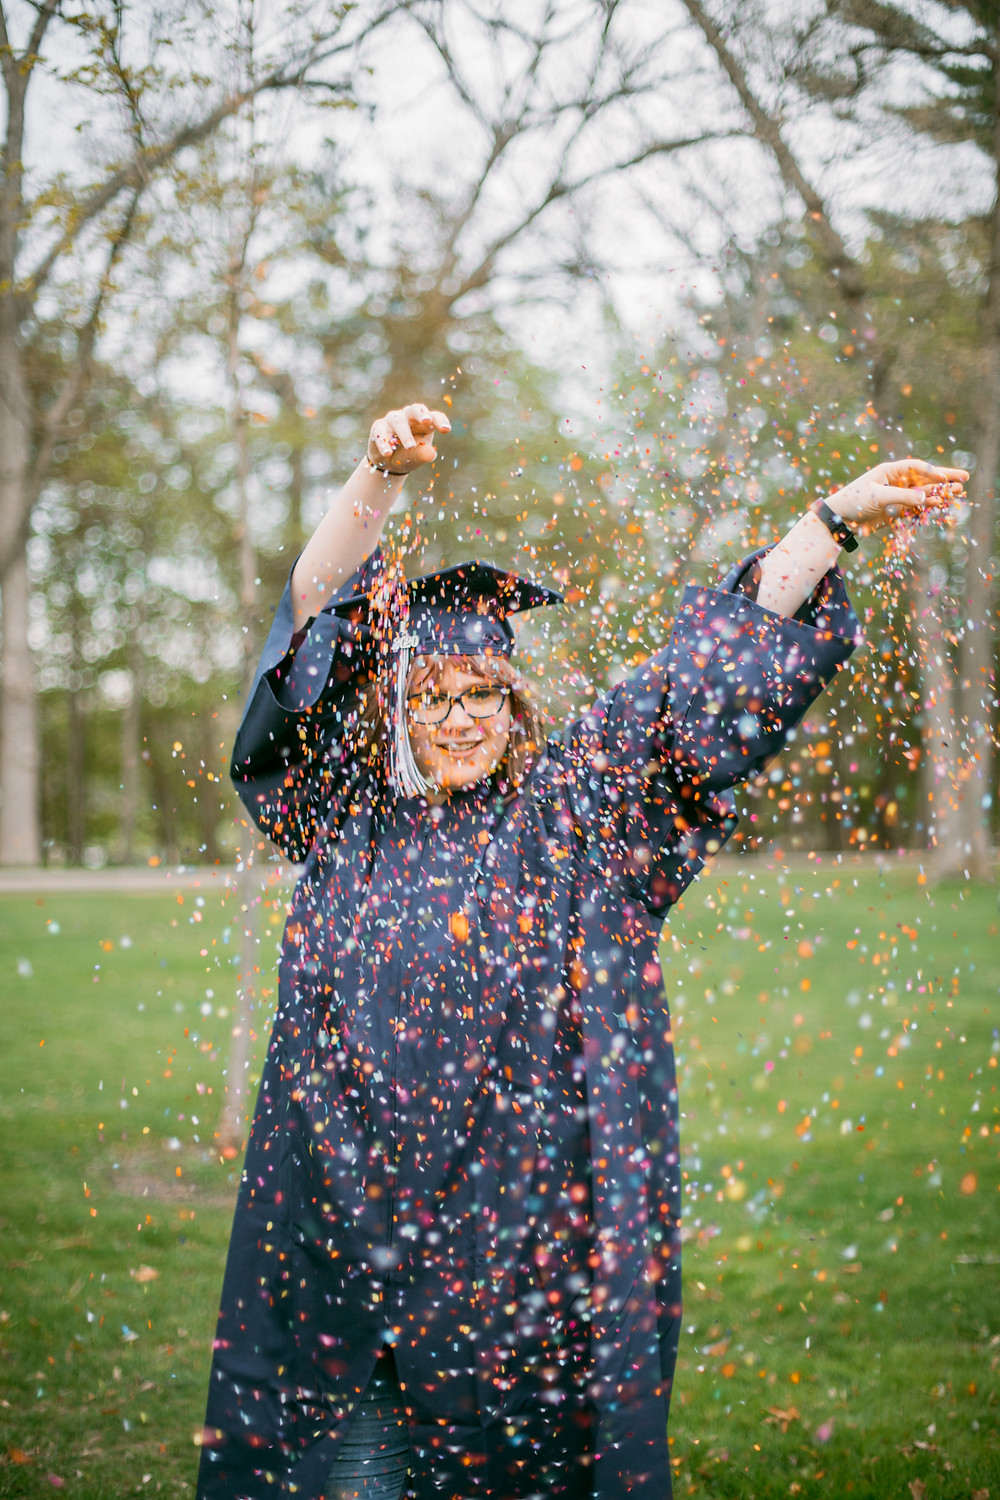 Class of 2020 Graduate throwing rainbow confetti. Lifestyle senior photography by Anna Gutermuth.